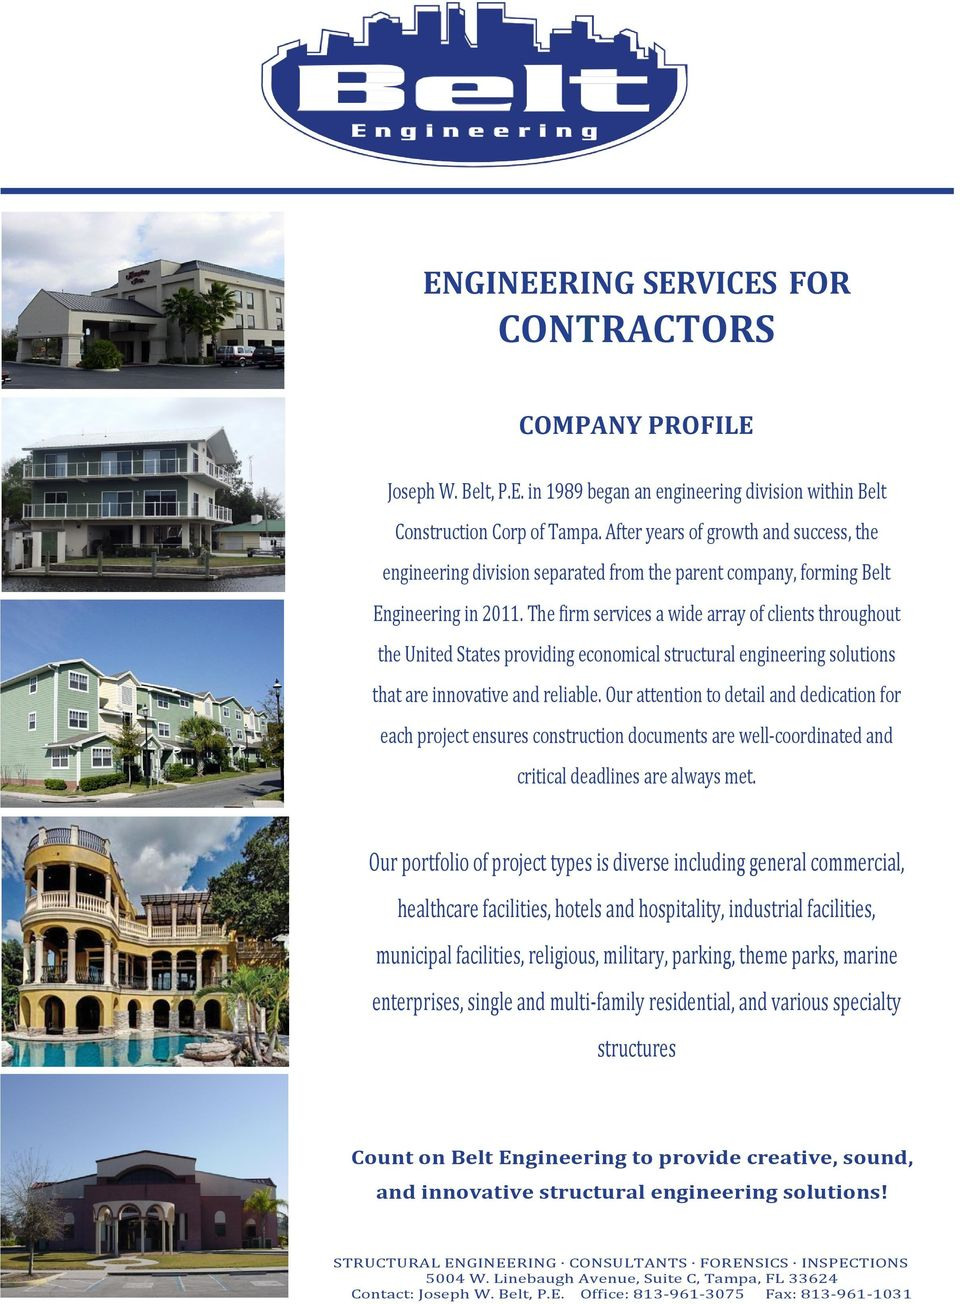 The firm services a wide array of clients throughout the United States providing economical structural engineering solutions that are innovative and reliable.